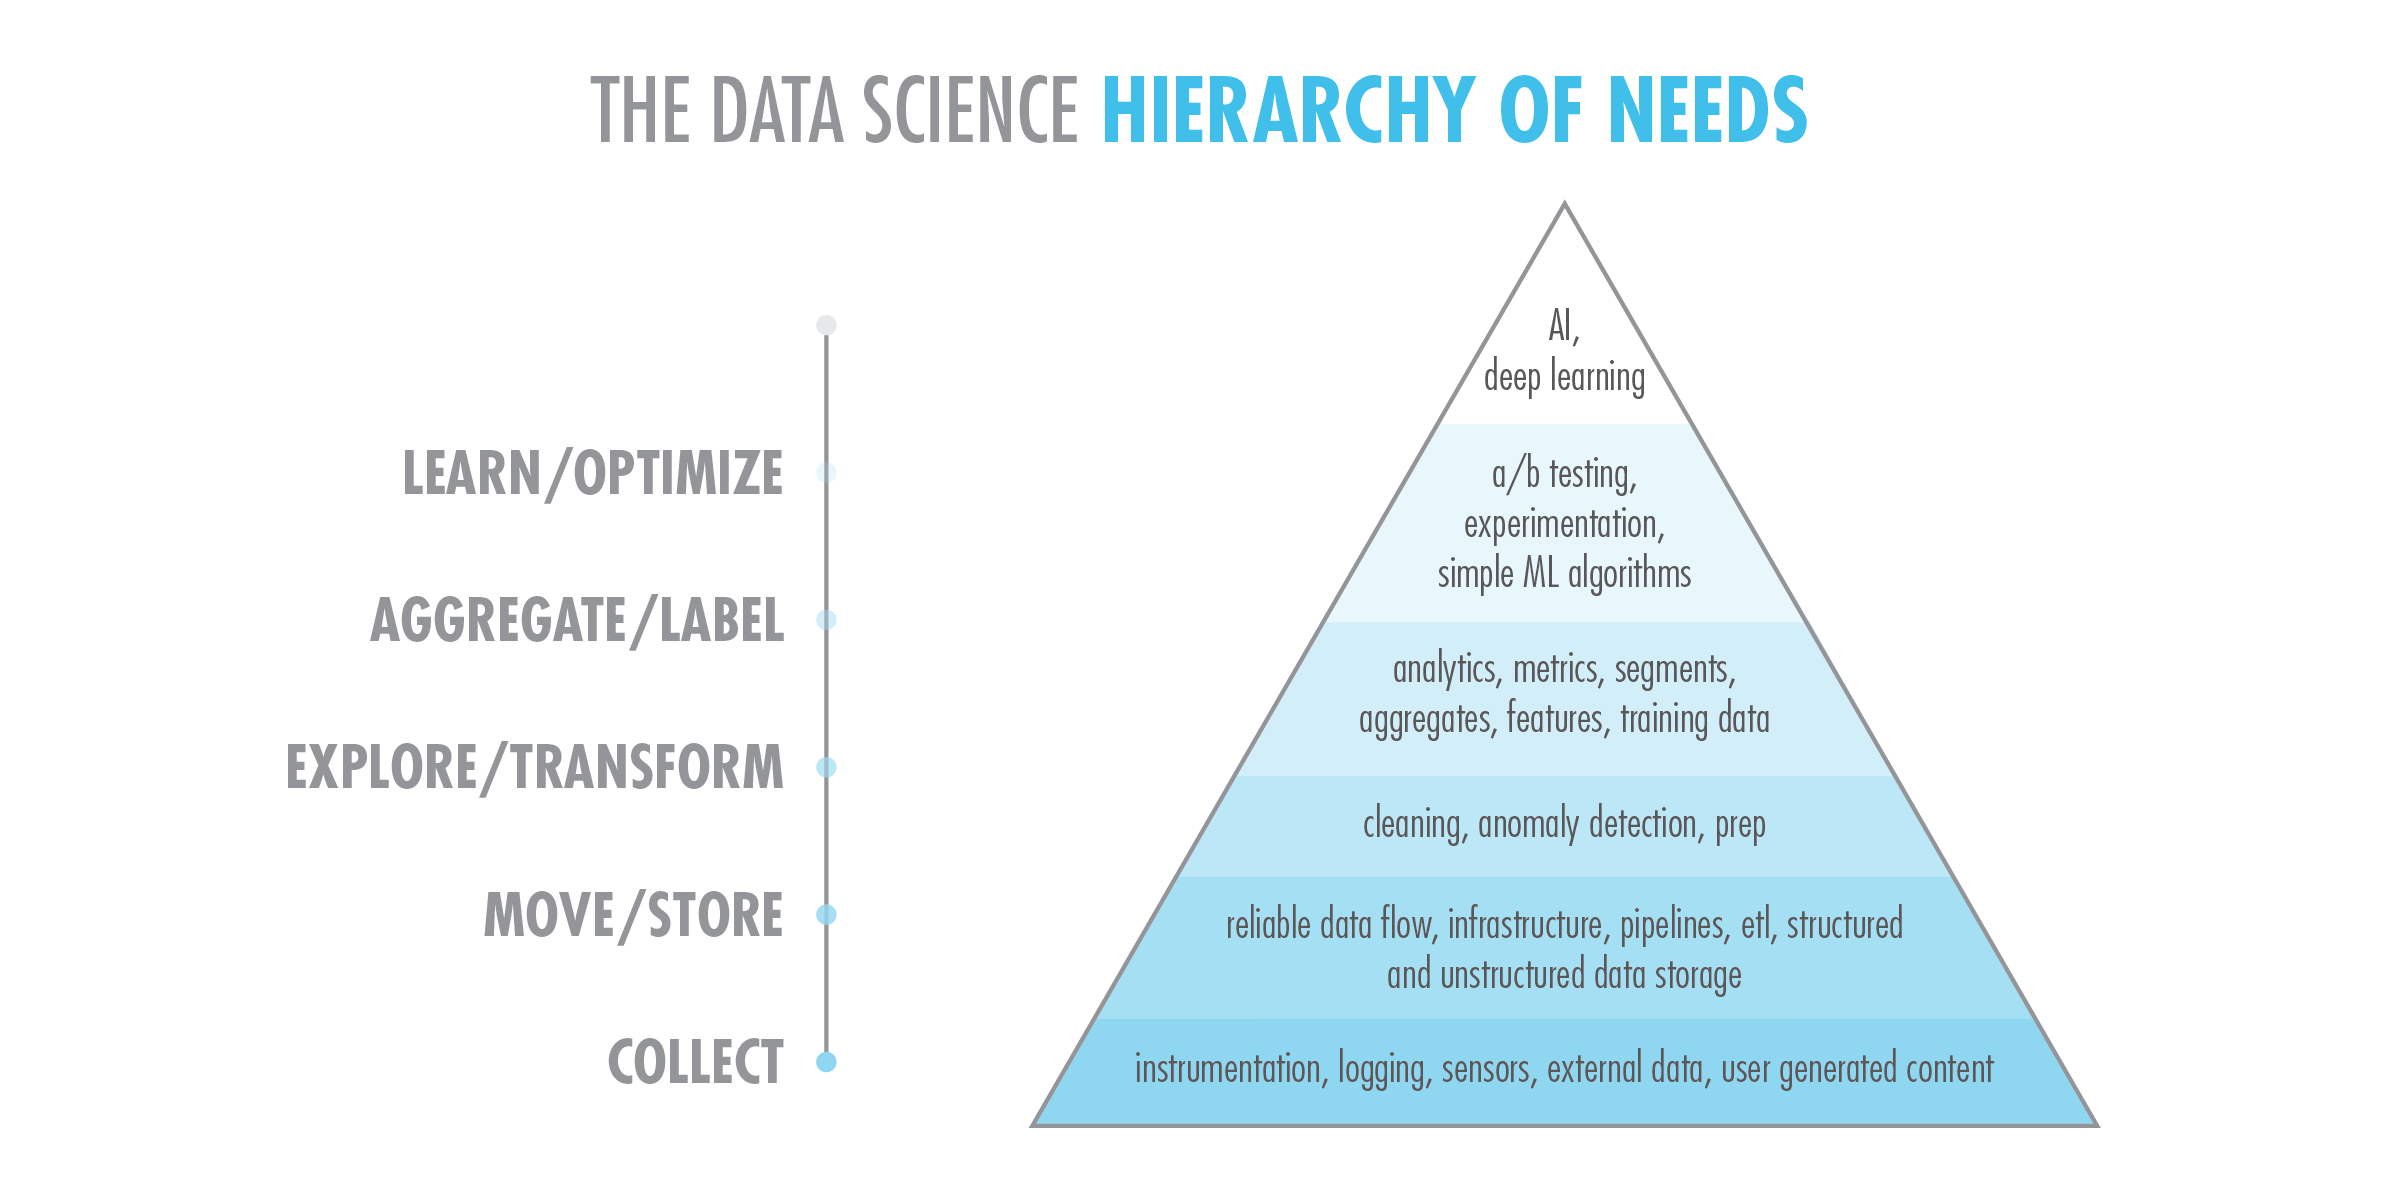 The data science hierarchy of needs is a triangle made up of 6 sections. The lowest level is collect, then move, then explore, then aggregate, then learn and optimize, then AI and deep learning at the top. The pyramid is linked to another site with further explanation of the pyramid.